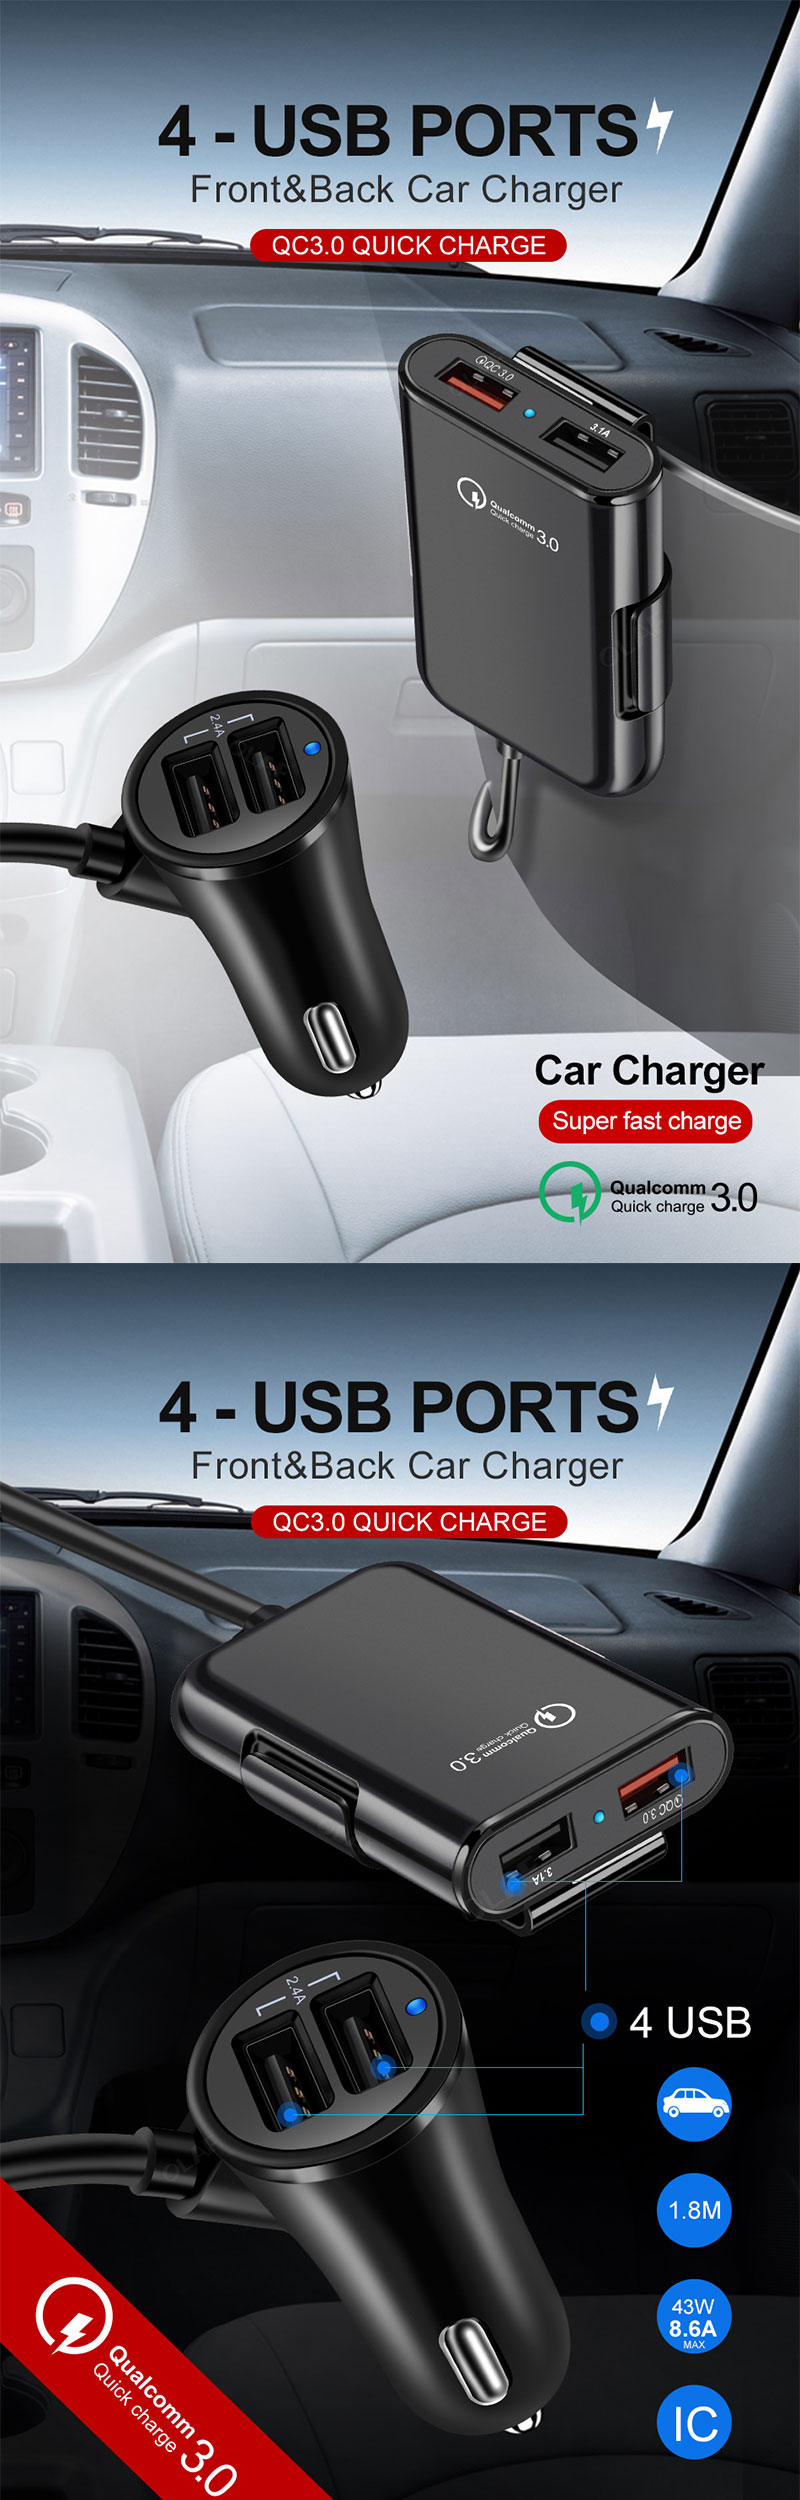 Universal USB Fast Adapter With 5.6ft Extension Cord Cable for MPV Car Phone 4 Ports FAST 3.0 3.1A USB for iPhone Charger Car